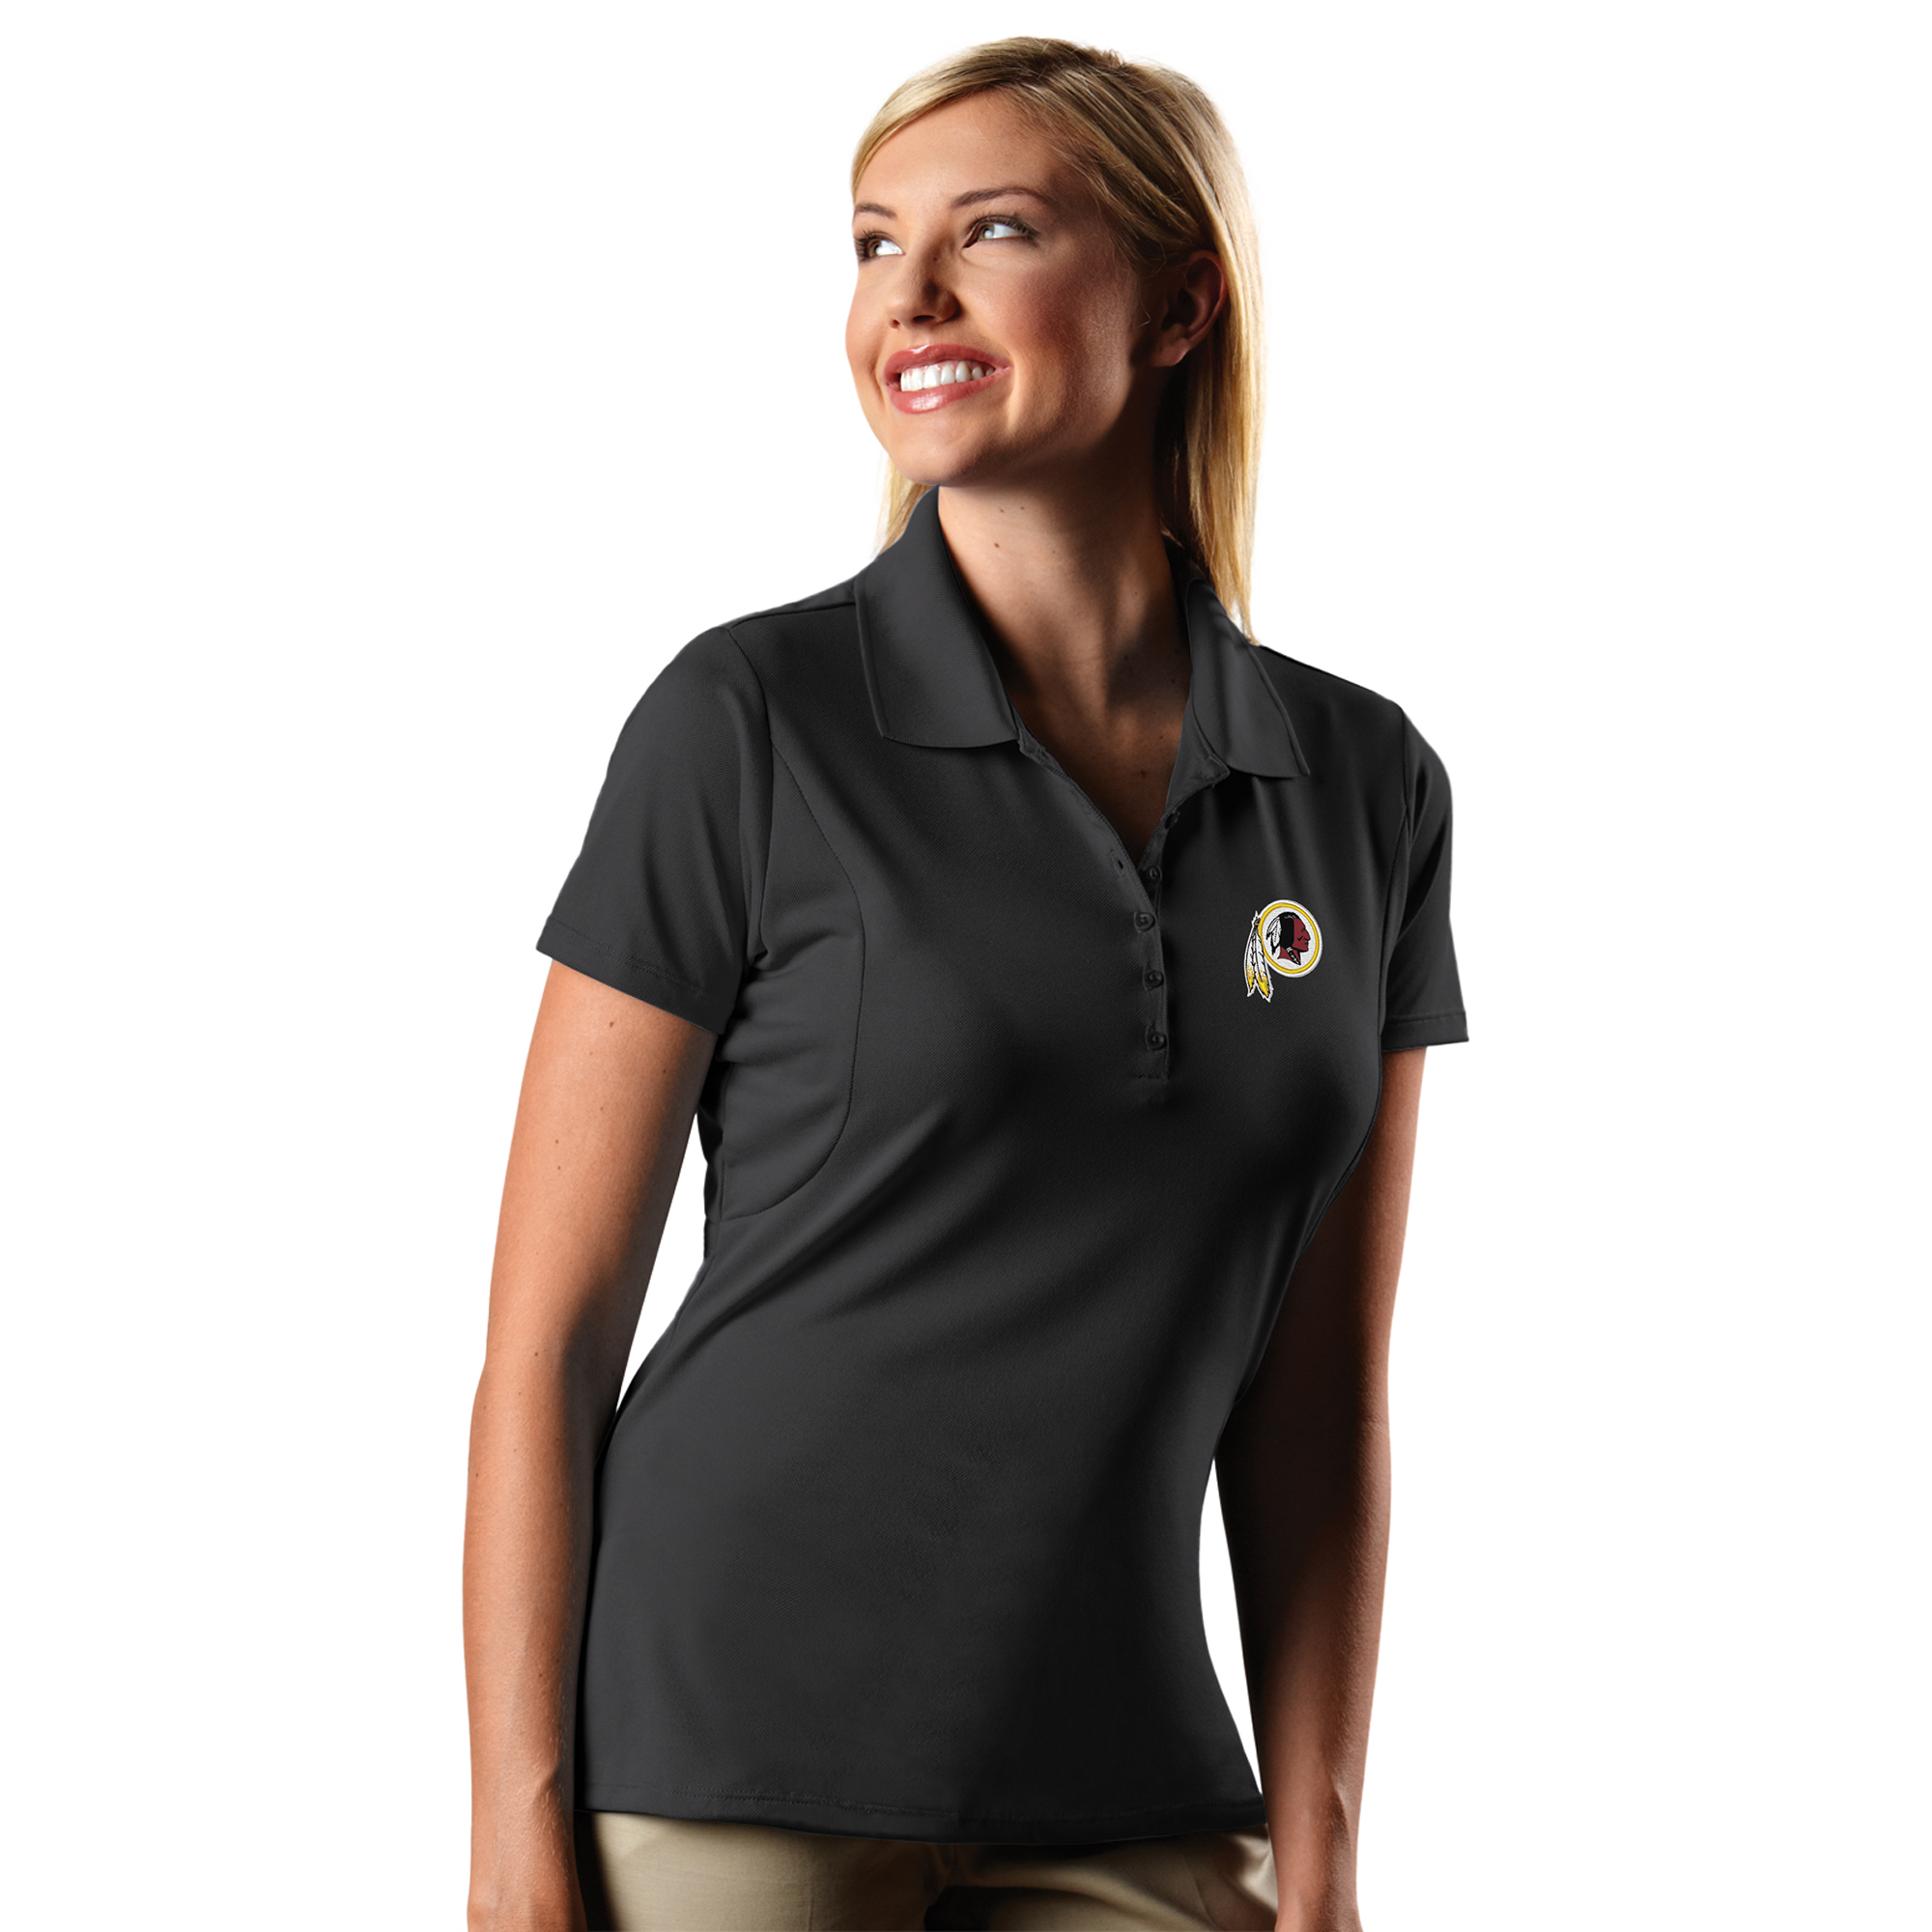 Washington Redskins Antigua Women's Pique Xtra-Lite Polo - Charcoal